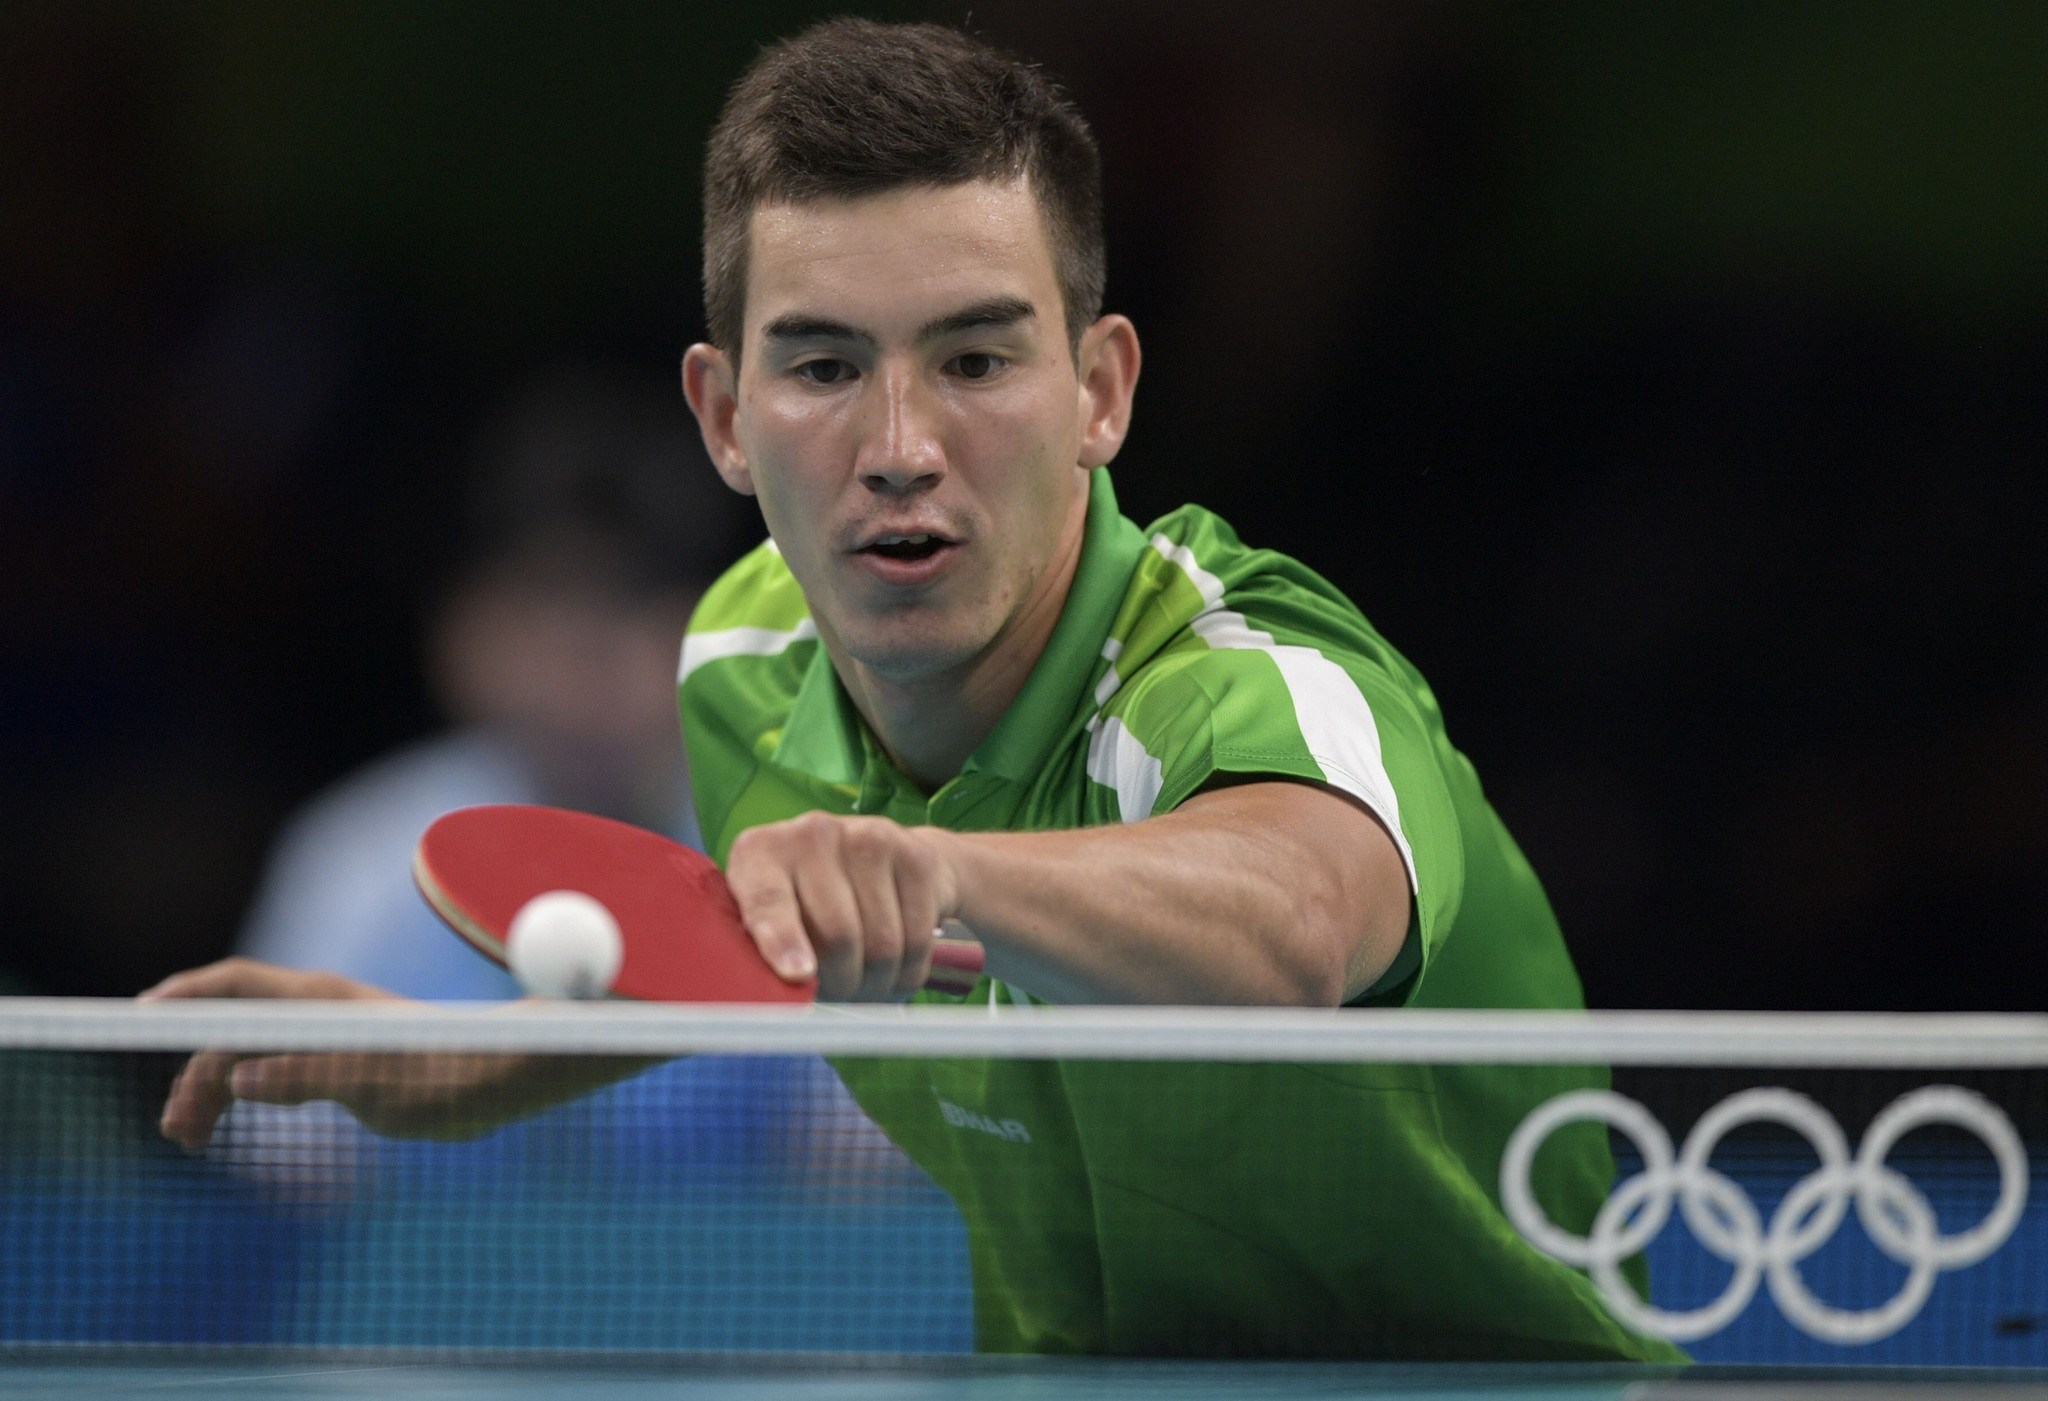 Finalists for last Asian Tokyo 2020 table tennis spots confirmed in Doha